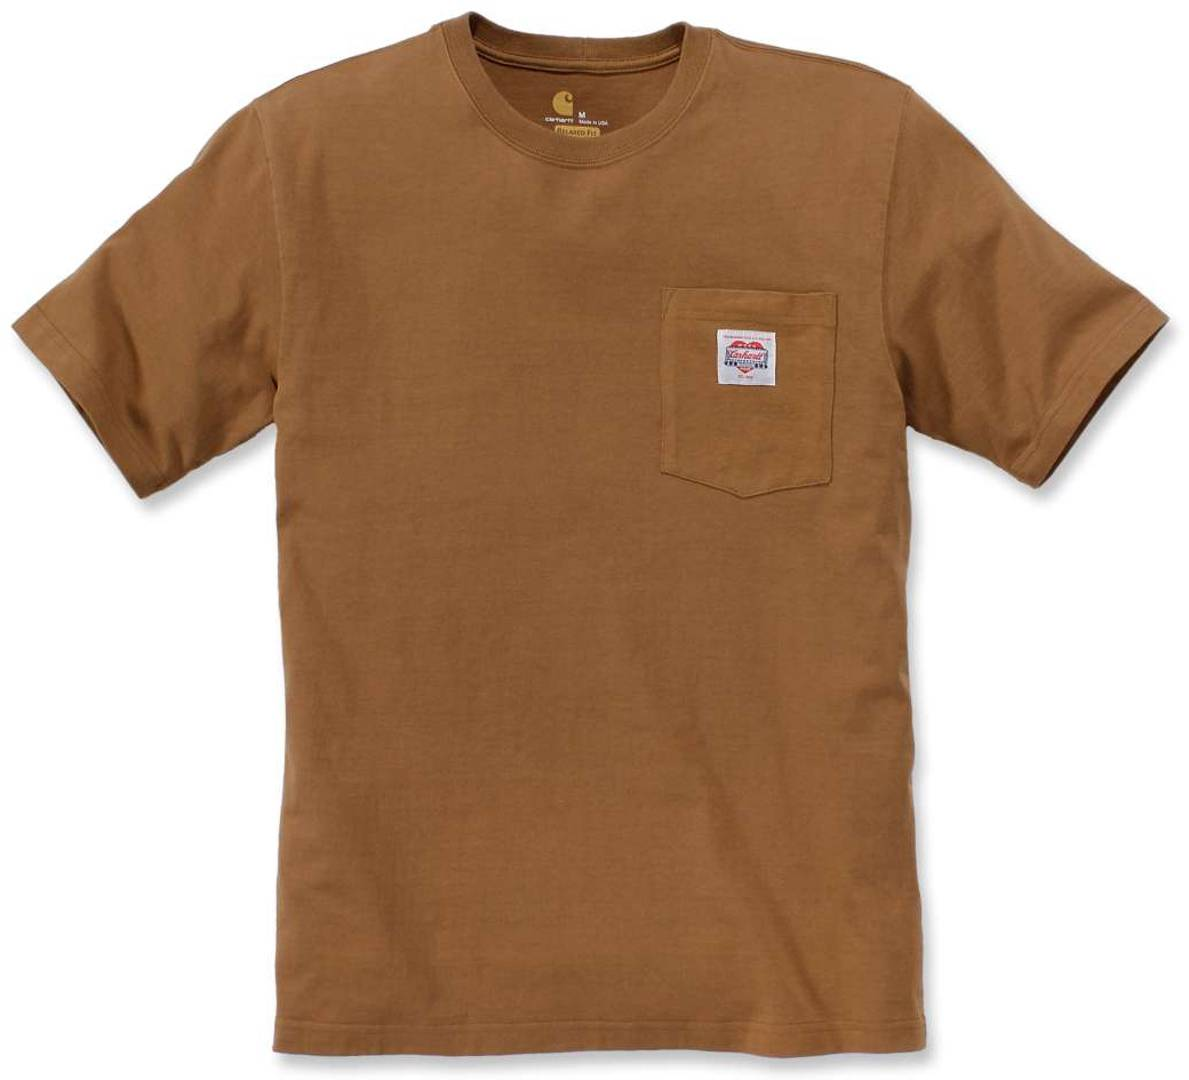 Carhartt K87 Icon Limited Edition T-Shirt Brown 2XL